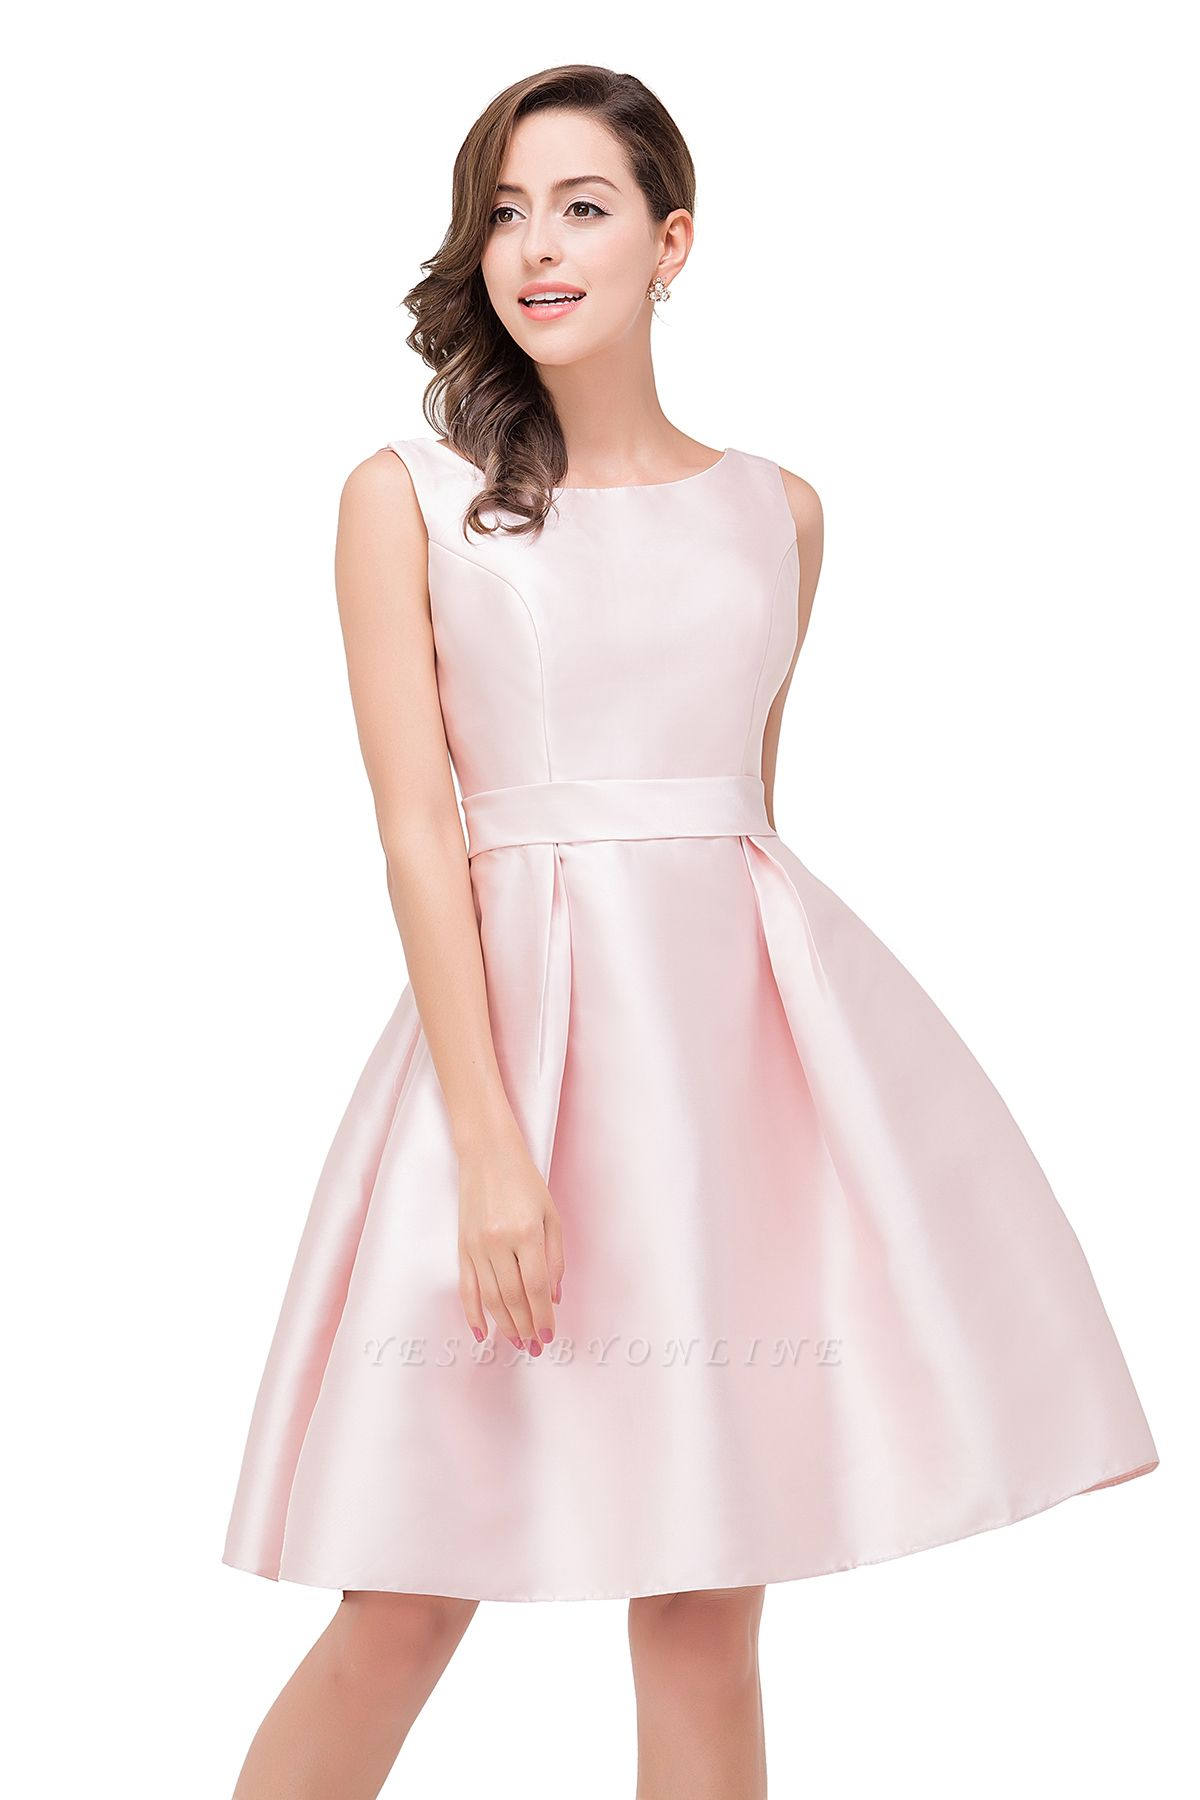 Sleeveless Knee-length Simple Scoop-neck Short with-Belt Prom Gown